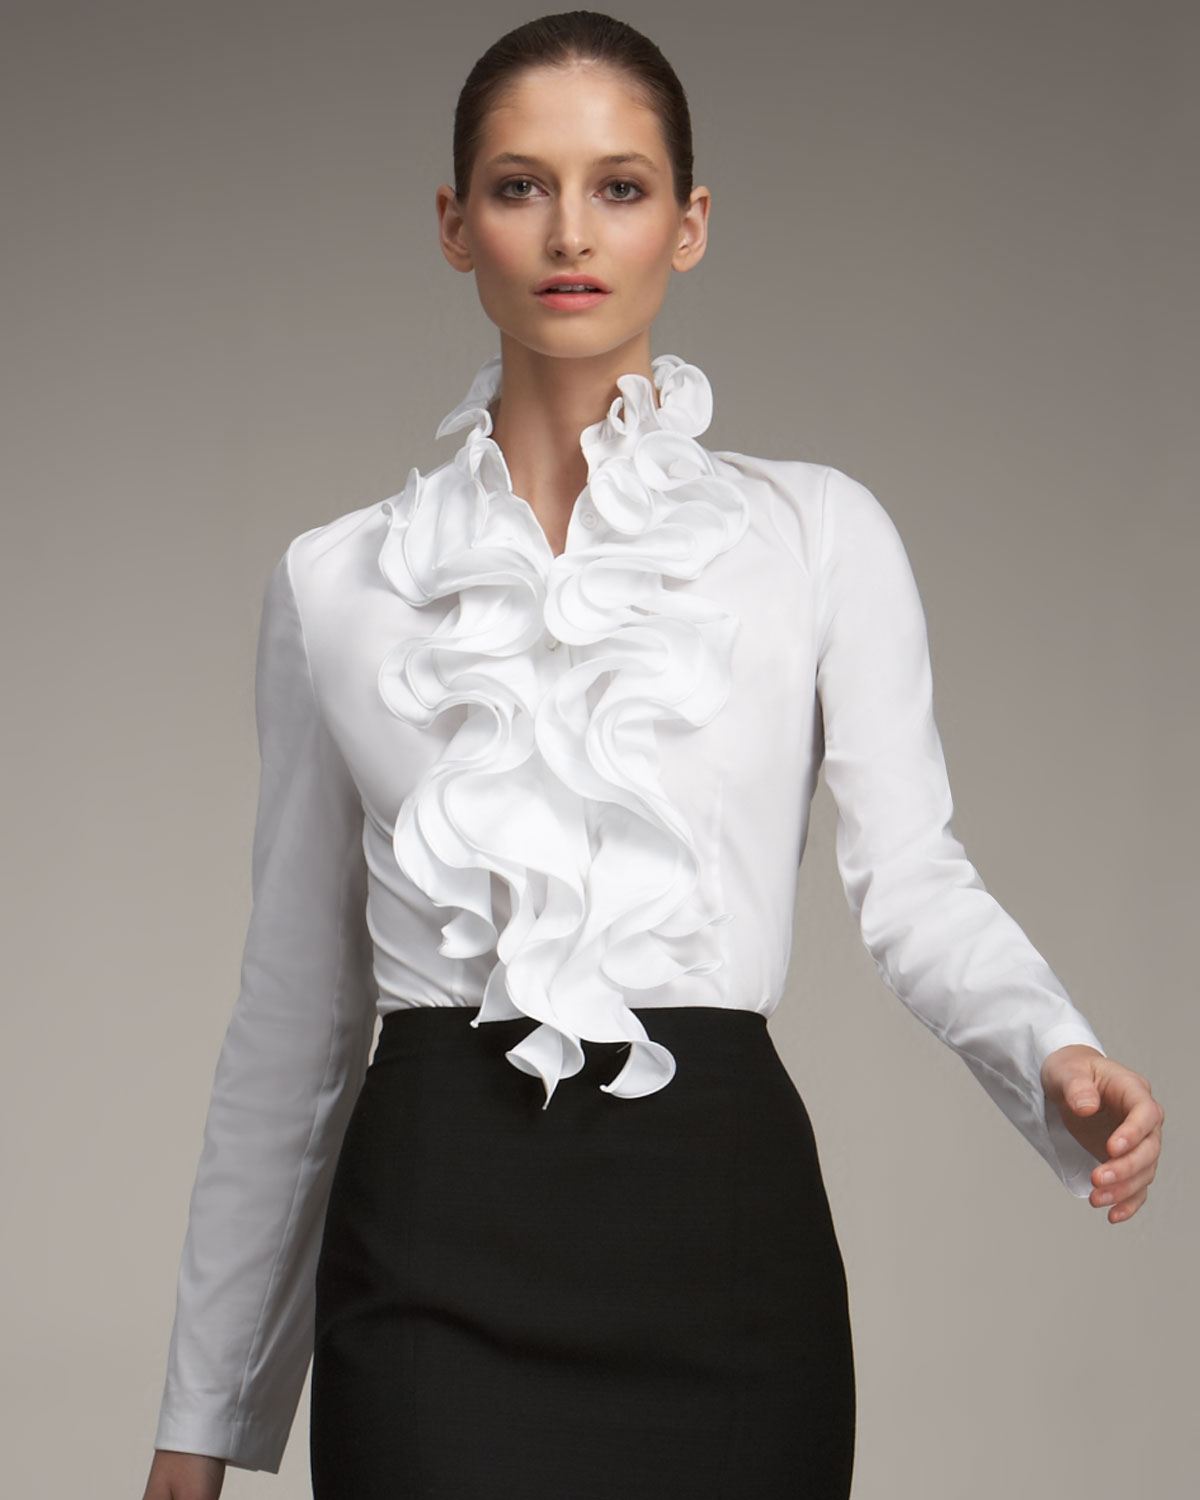 Find a wide variety of classic women's blouses at Talbots. From sleeveless to long sleeves; cotton to linen. Our collection has something for every woman.